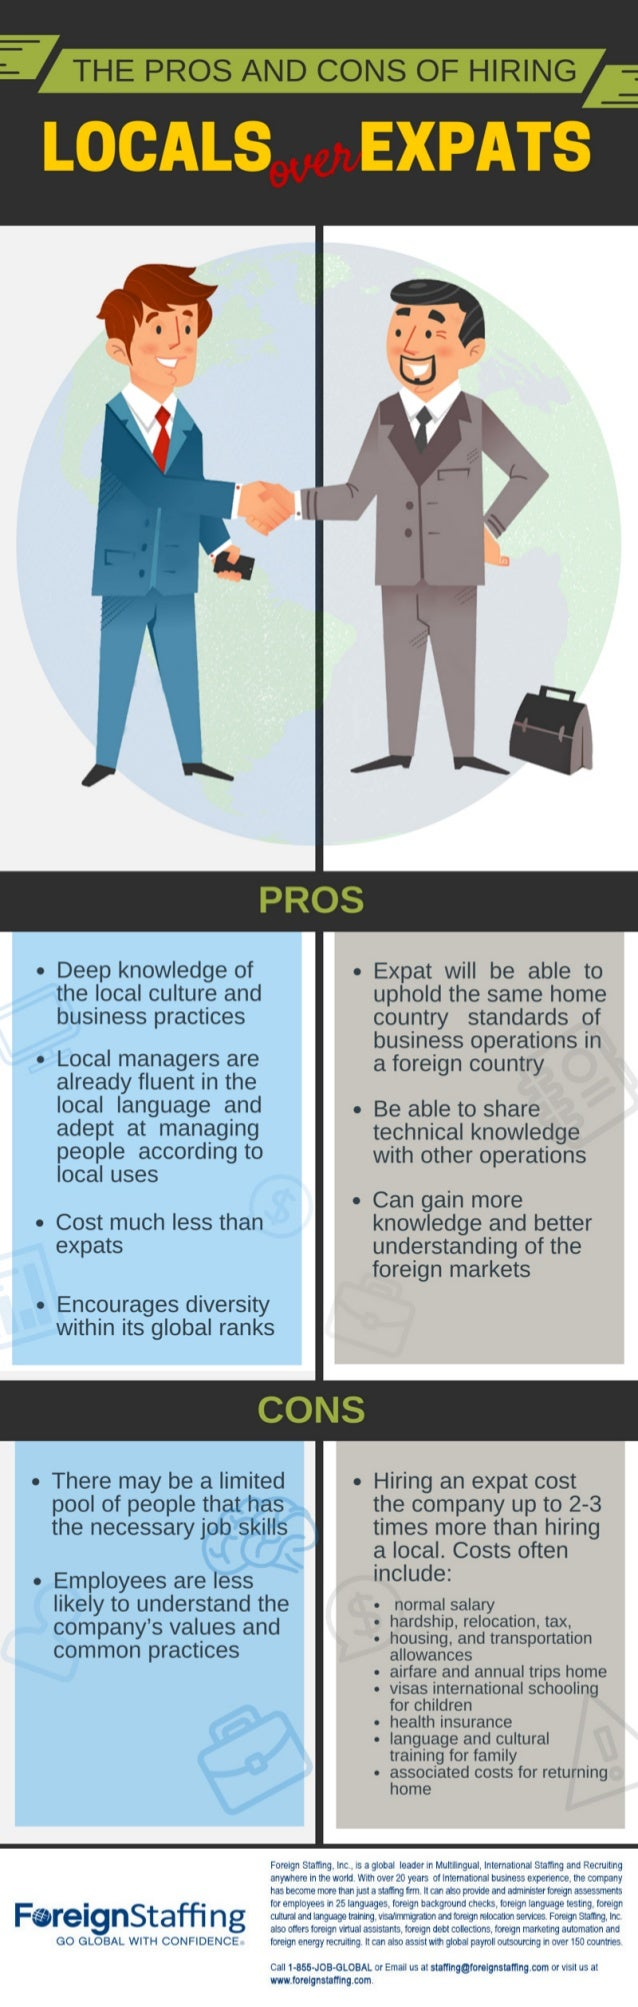 pro and cons of expanding business overseas  your business, here are a few pros and cons you should consider:  down the  street, across the state, around the country, and overseas  for instance, a  website could help you build awareness and expand your operation.